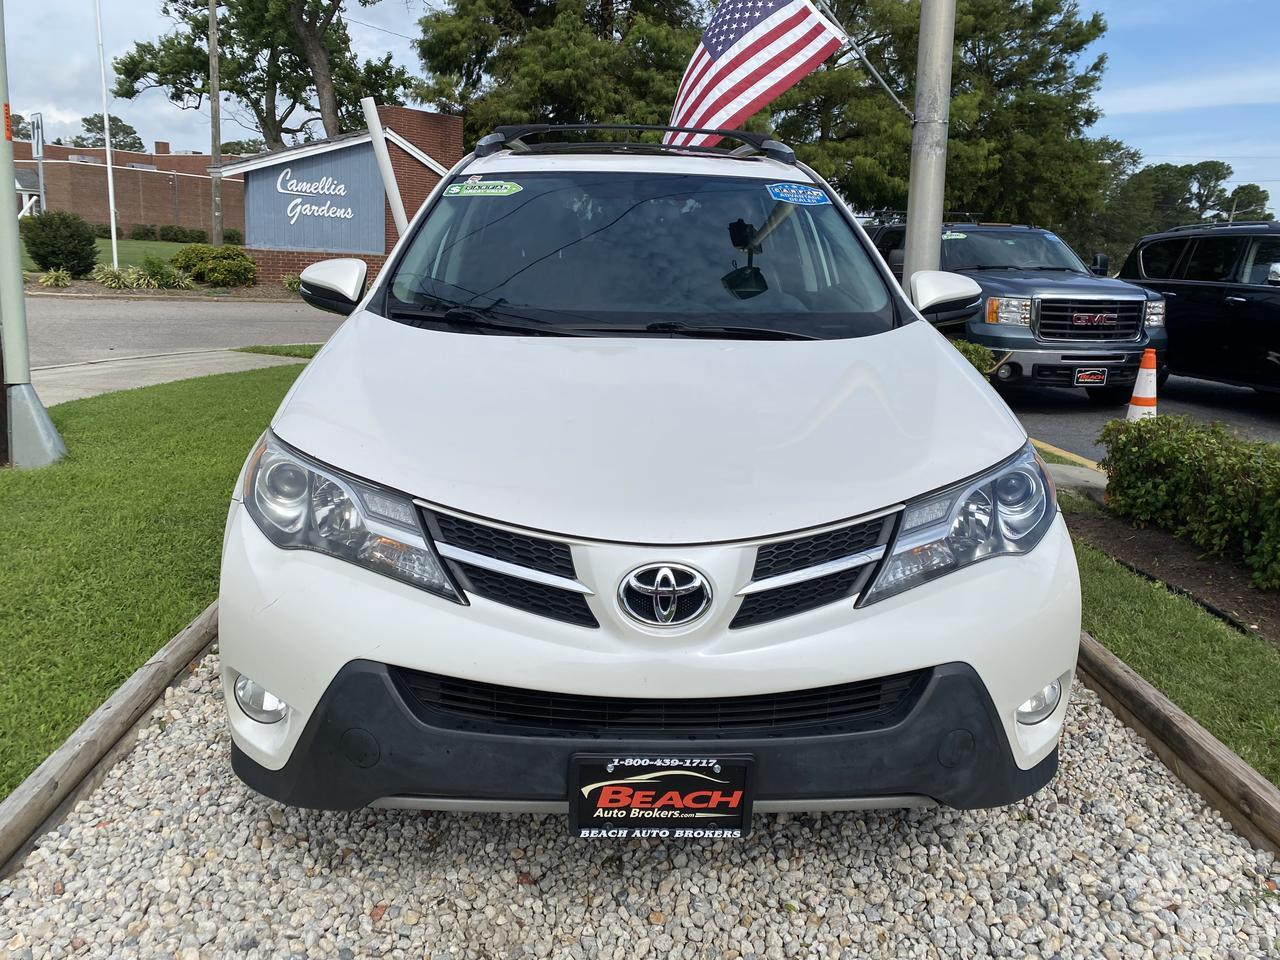 2014 TOYOTA RAV4 LIMITED, WARRANTY, LEATHER, NAV, SUNROOF, HEATED FRONT SEATS, BACKUP CAM, 1 OWNER, CLEAN CARFAX! Norfolk VA